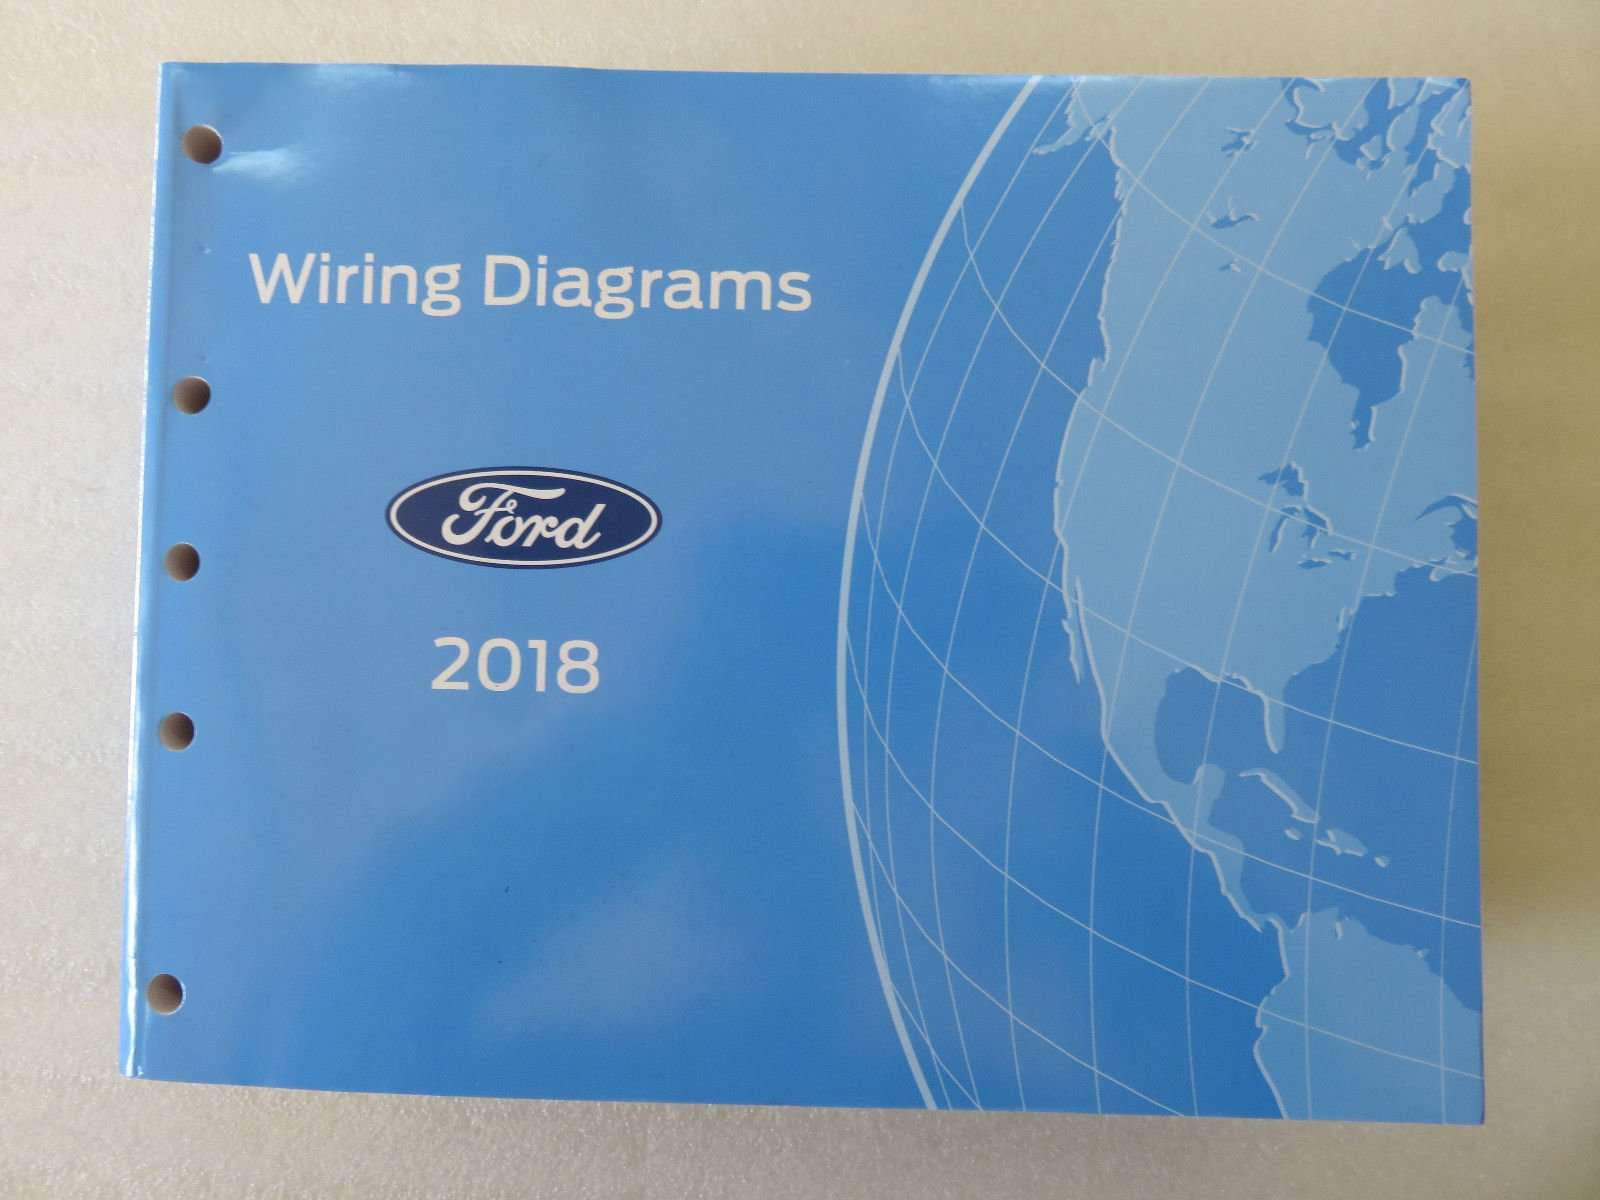 Tongue Diagram Worksheet as well 3 Wire Oil Pressure Switch Wiring Diagram furthermore 1160717 05 Gto S14 Dbw Throttle Wiring Help further 131772 Retrofit Usb To An 09 Titanium X also WGF85. on ford 5 0 wiring diagram